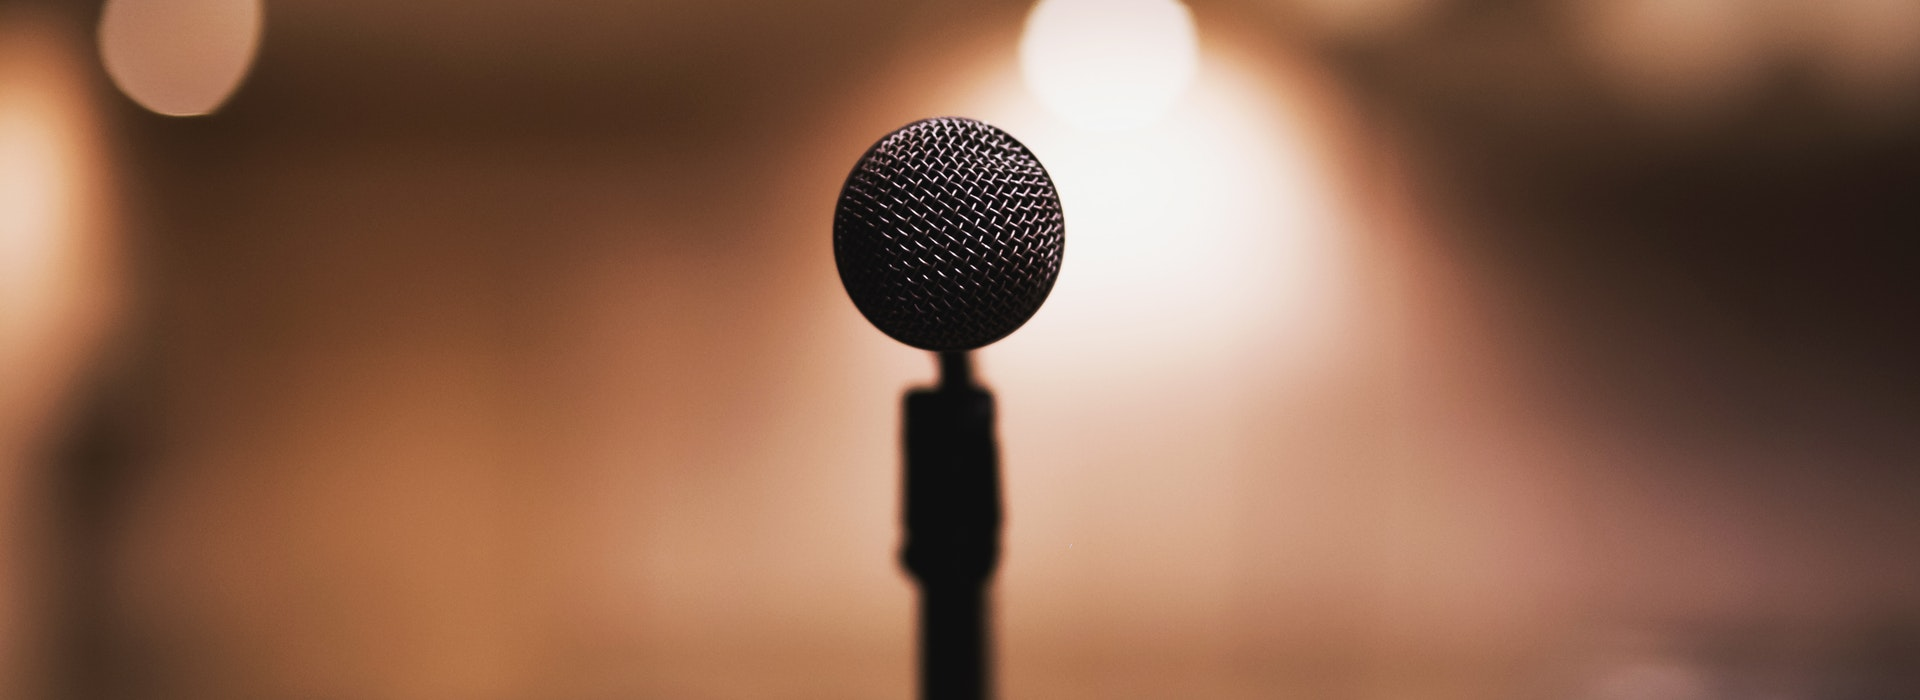 Closeup photo of a microphone against a blurry brown background